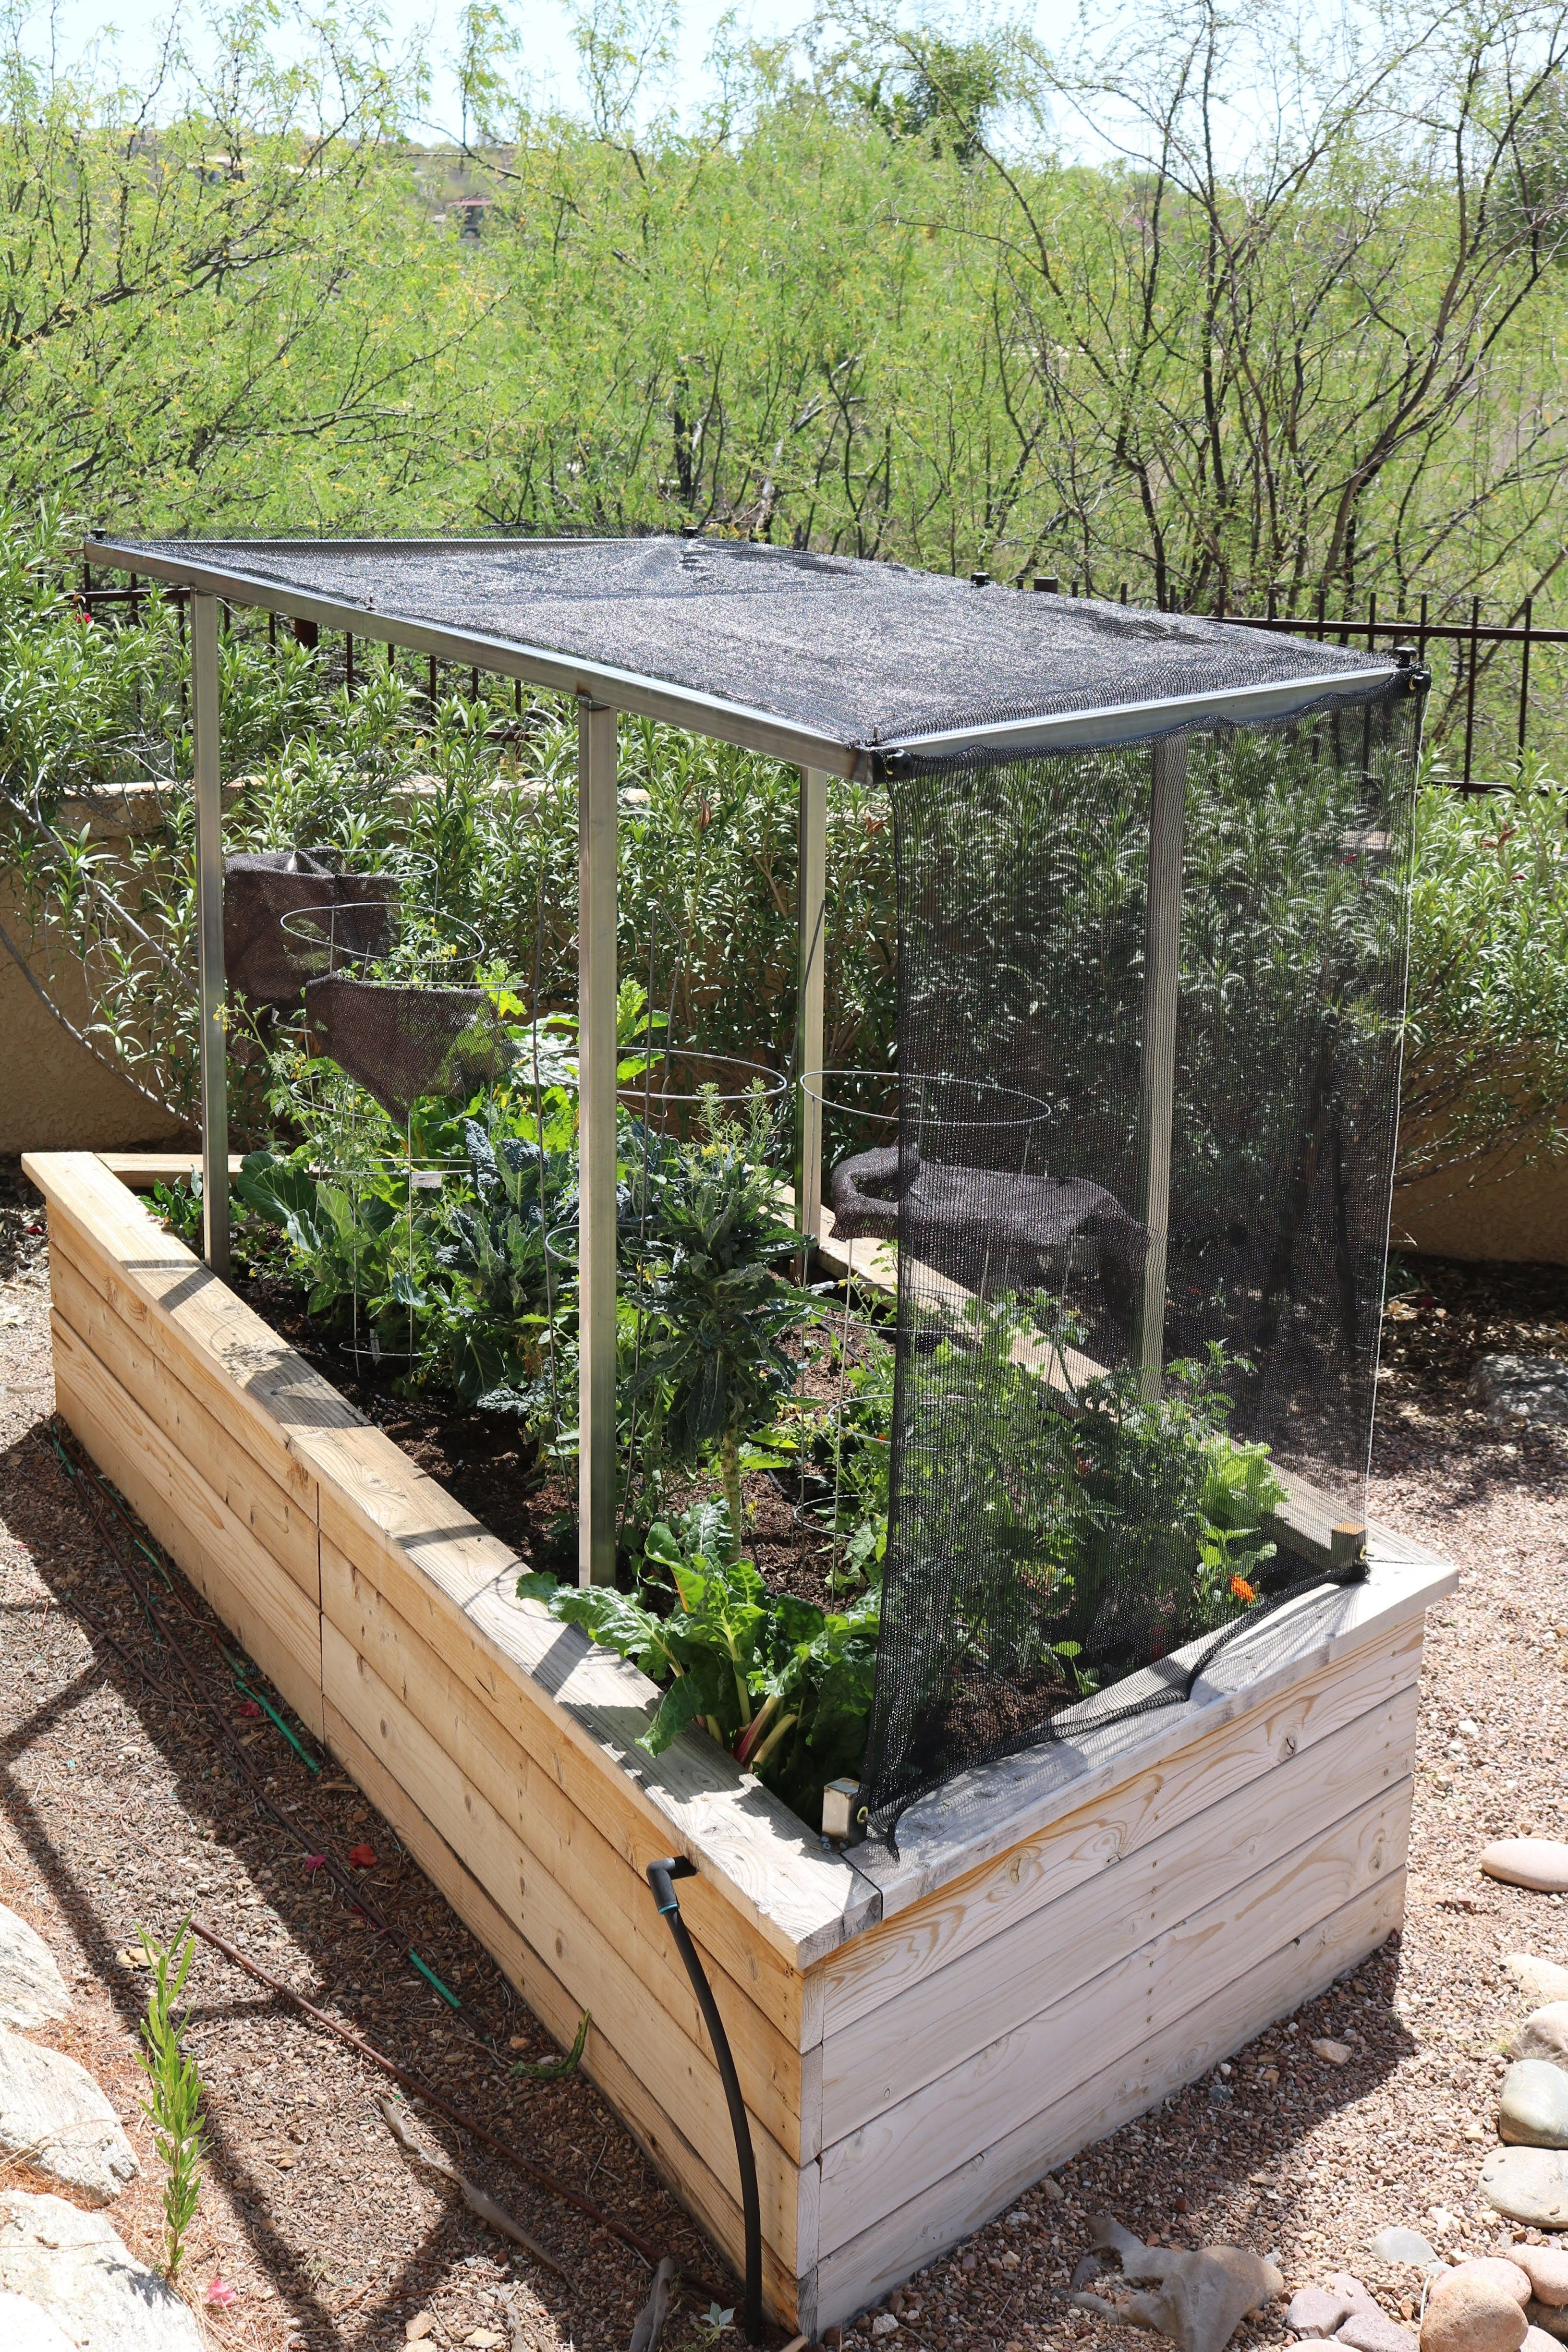 Raised Redwood Vegetable Garden Bed with Shade Cloth on